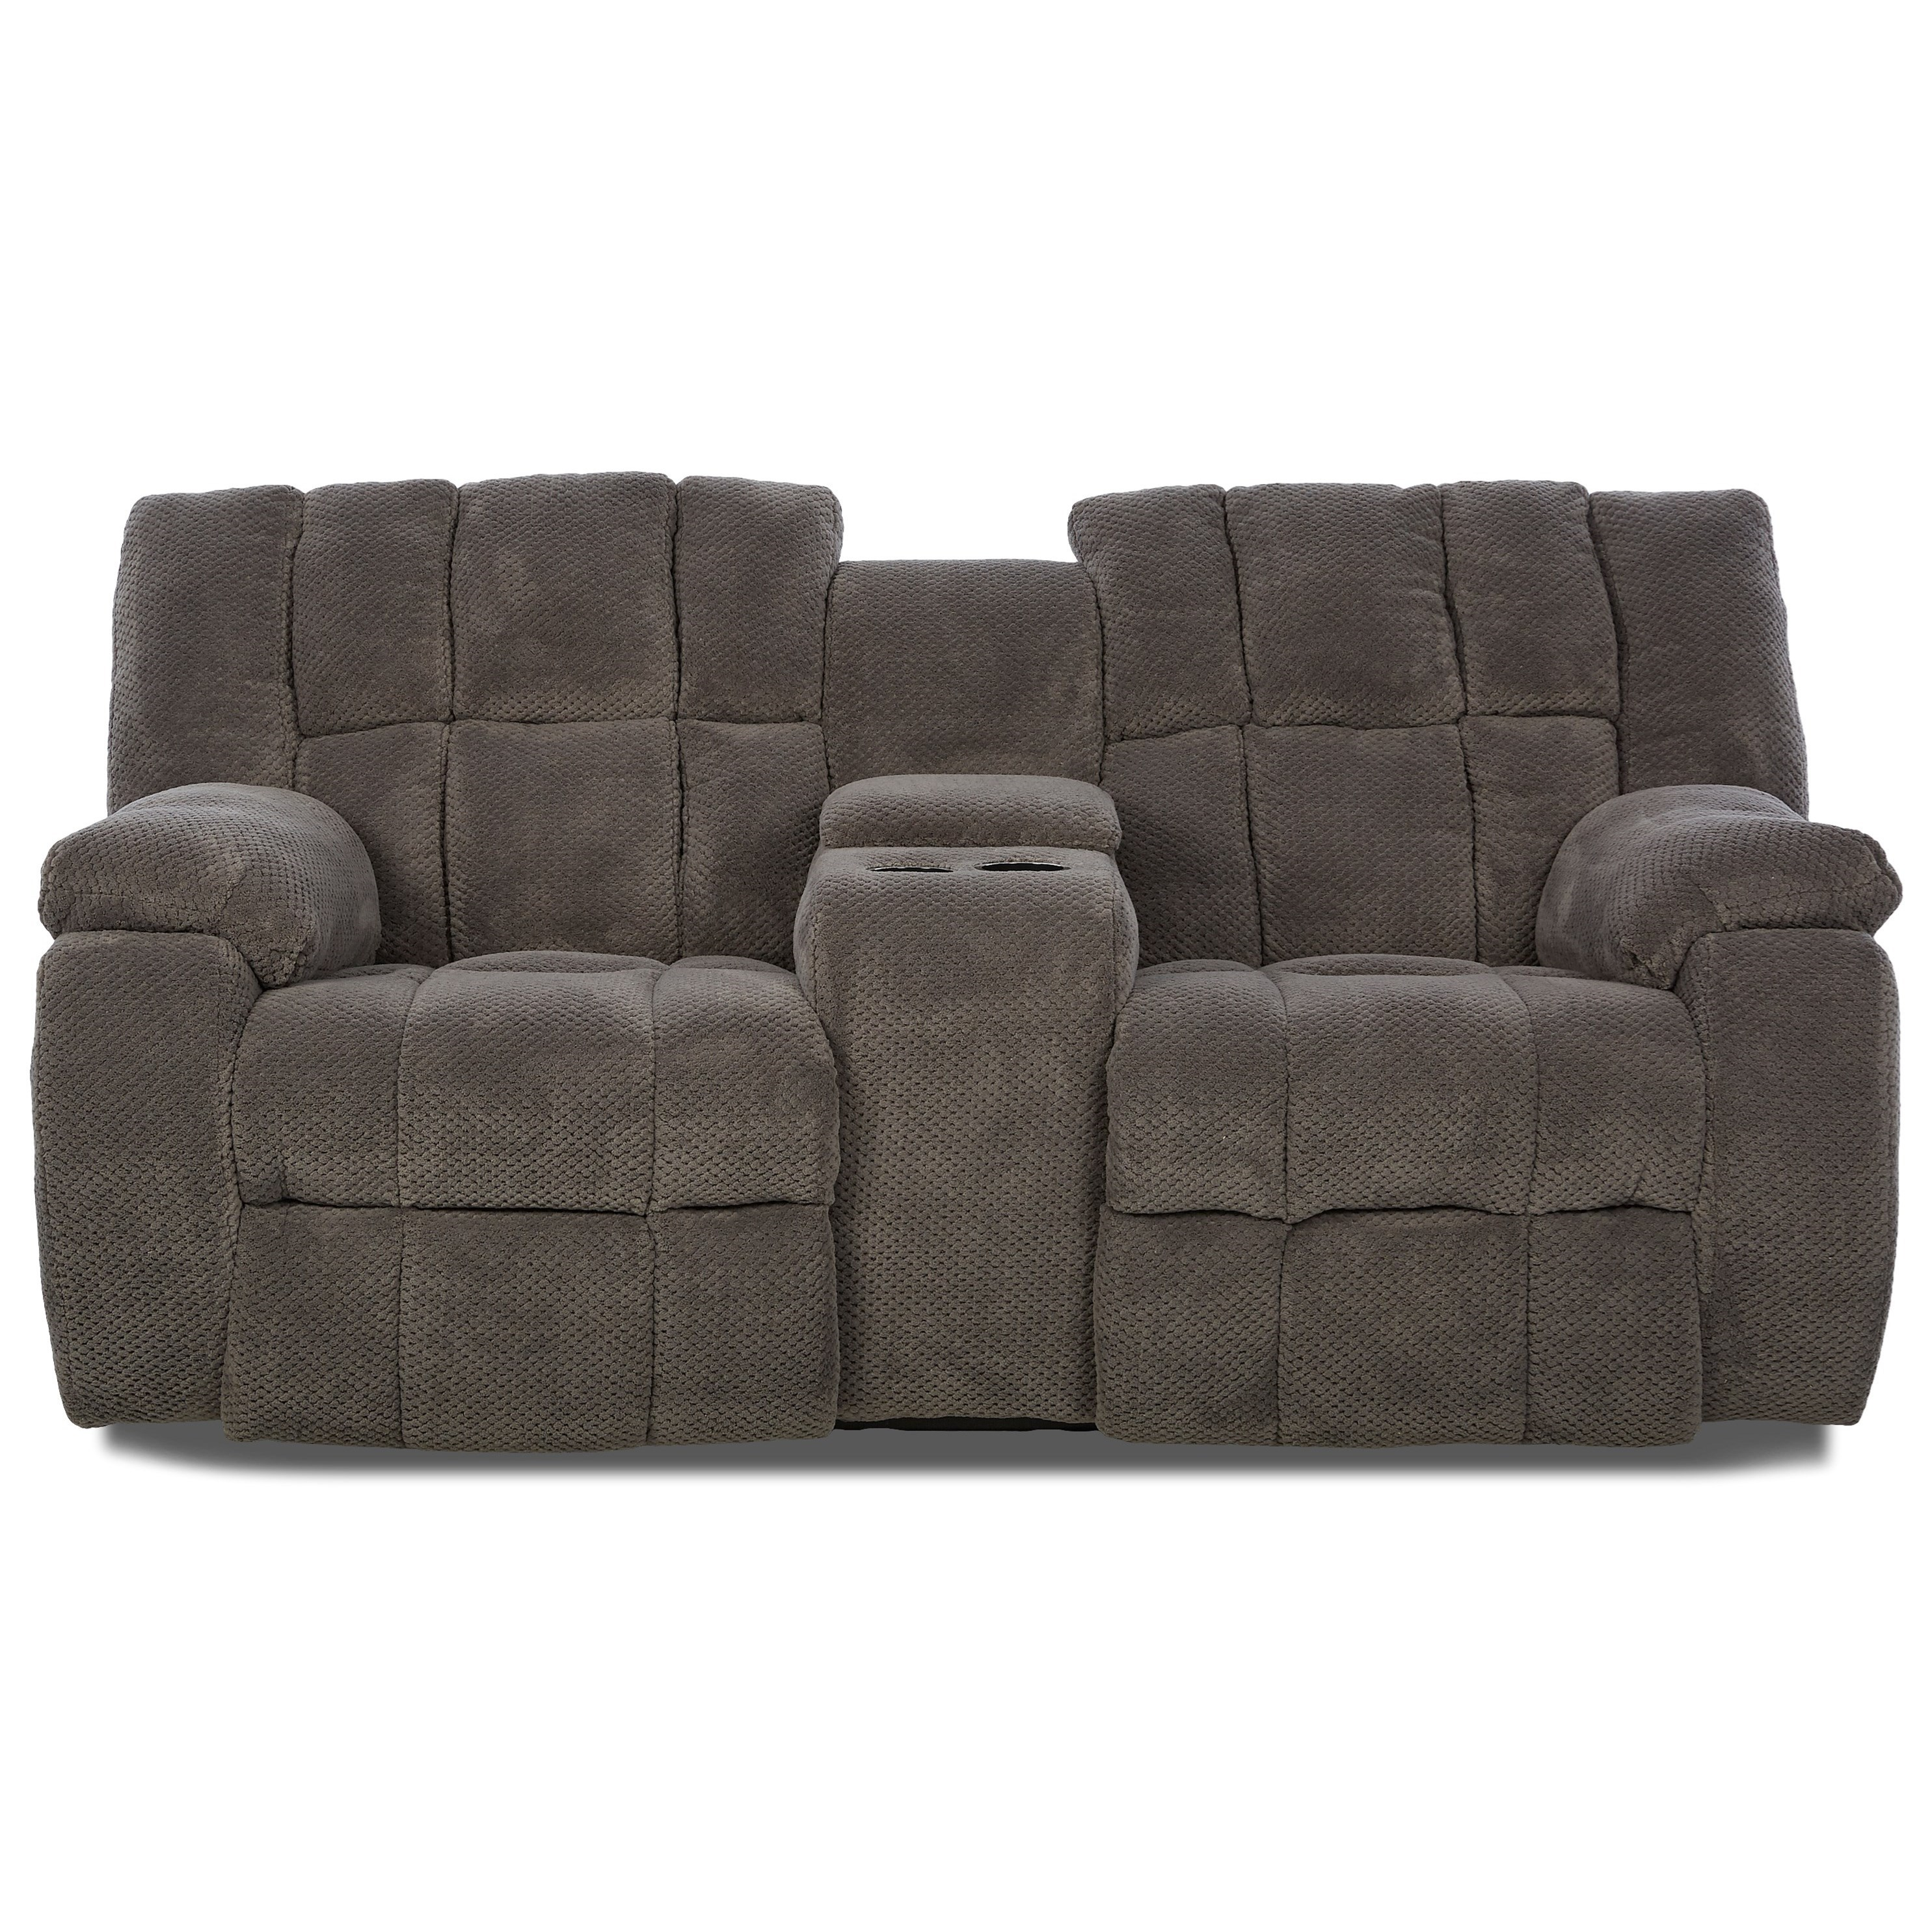 Klaussner Dozer Dozer Power Reclining Loveseat - Item Number: 87803 PWCRL